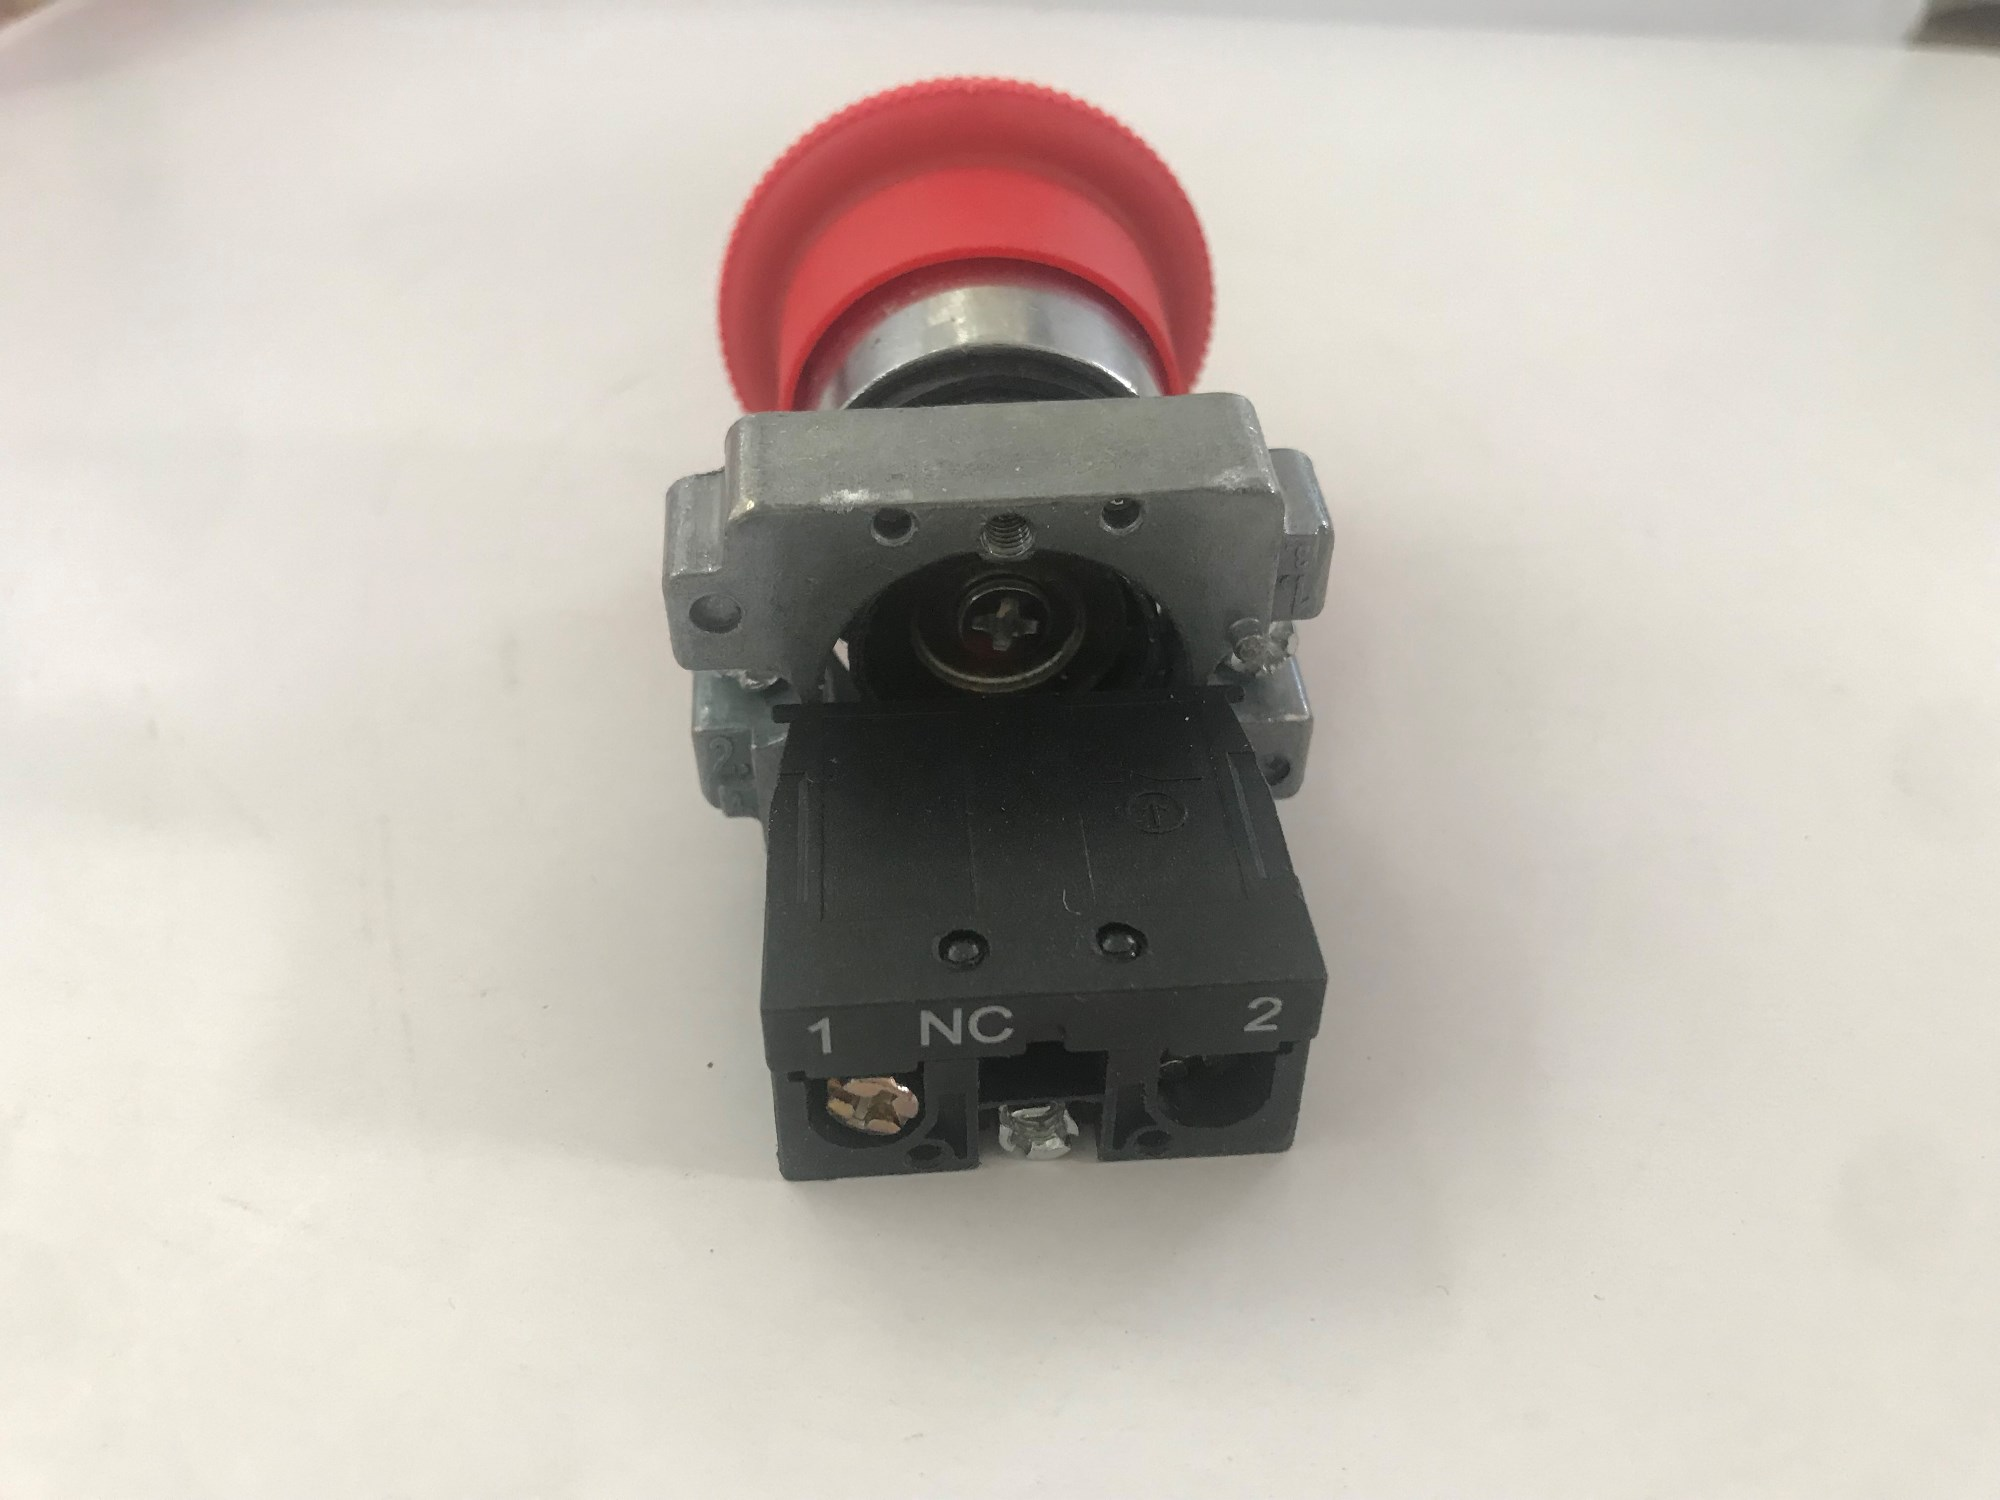 Emergency Stop Push Button Switch Manufacturers, Emergency Stop Push Button Switch Factory, Supply Emergency Stop Push Button Switch